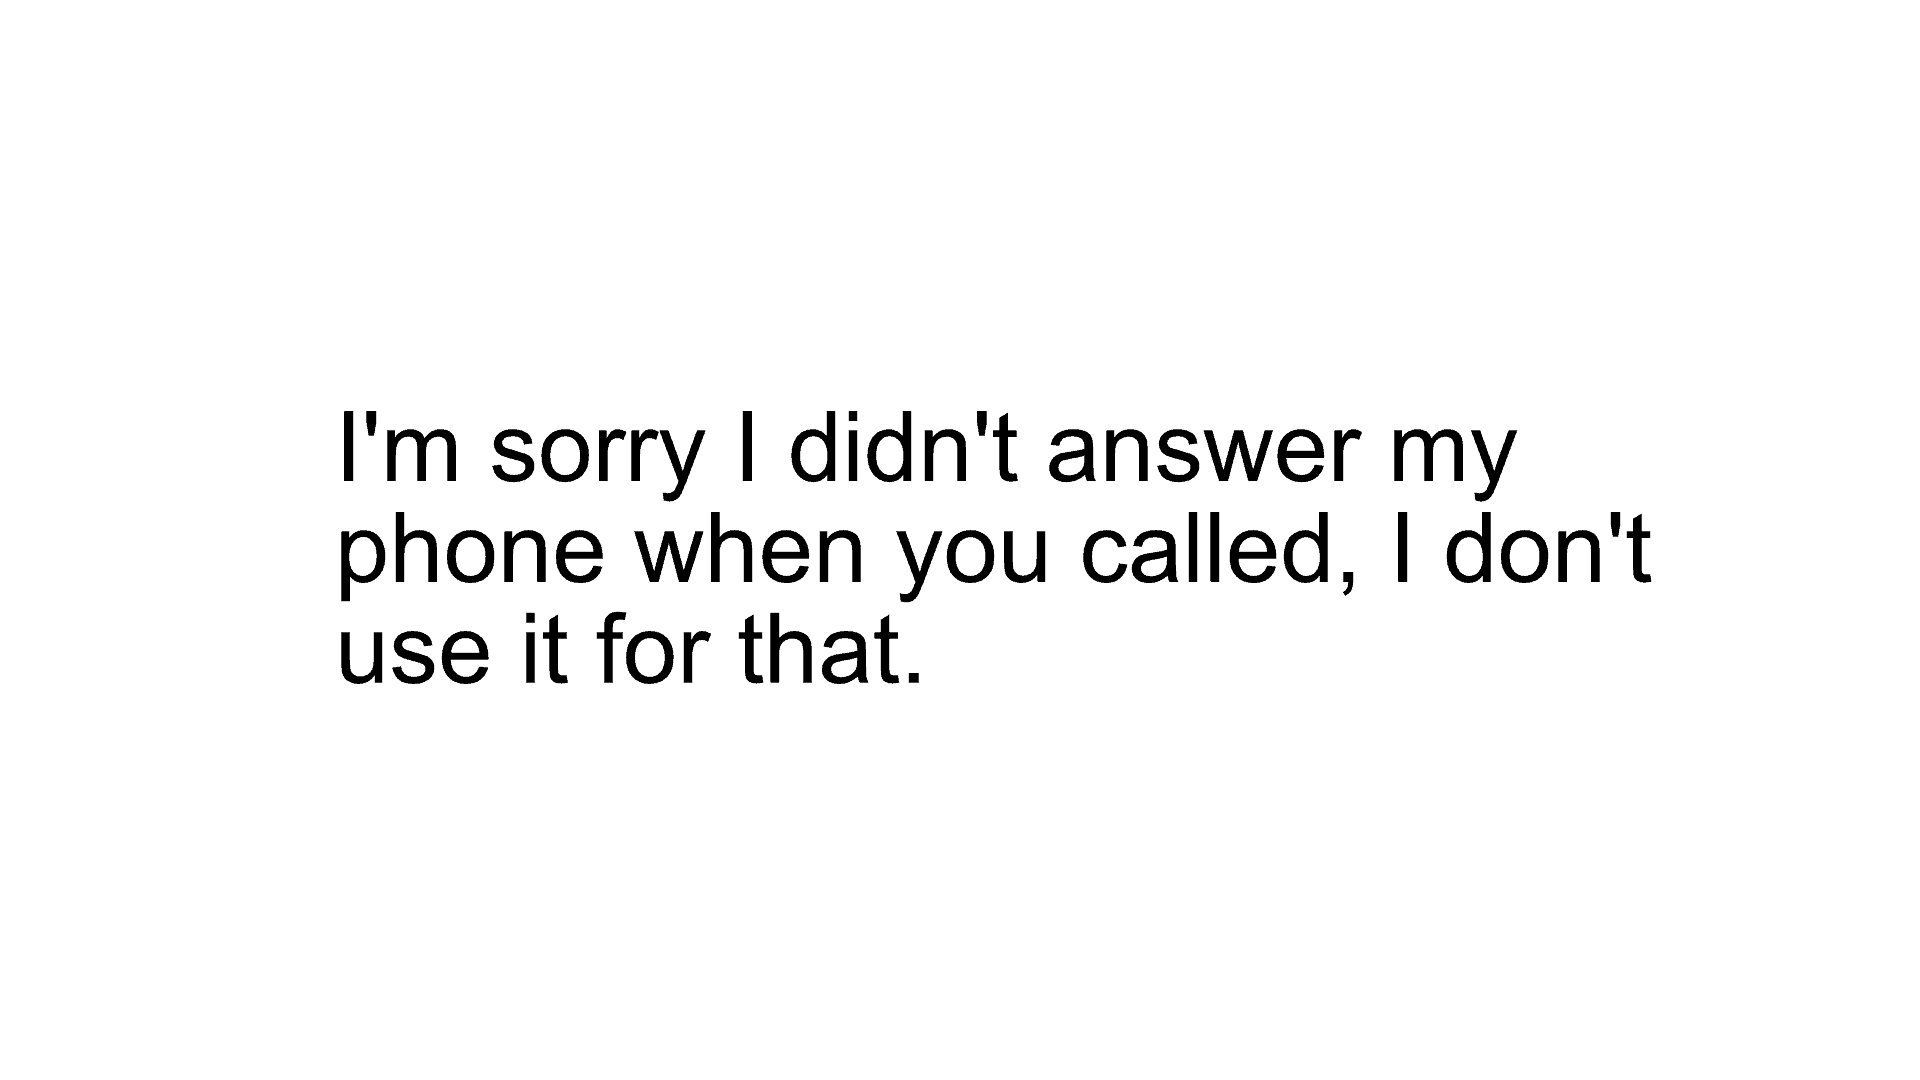 I'm sorry I didn't answer when you called, I don't use it for that.